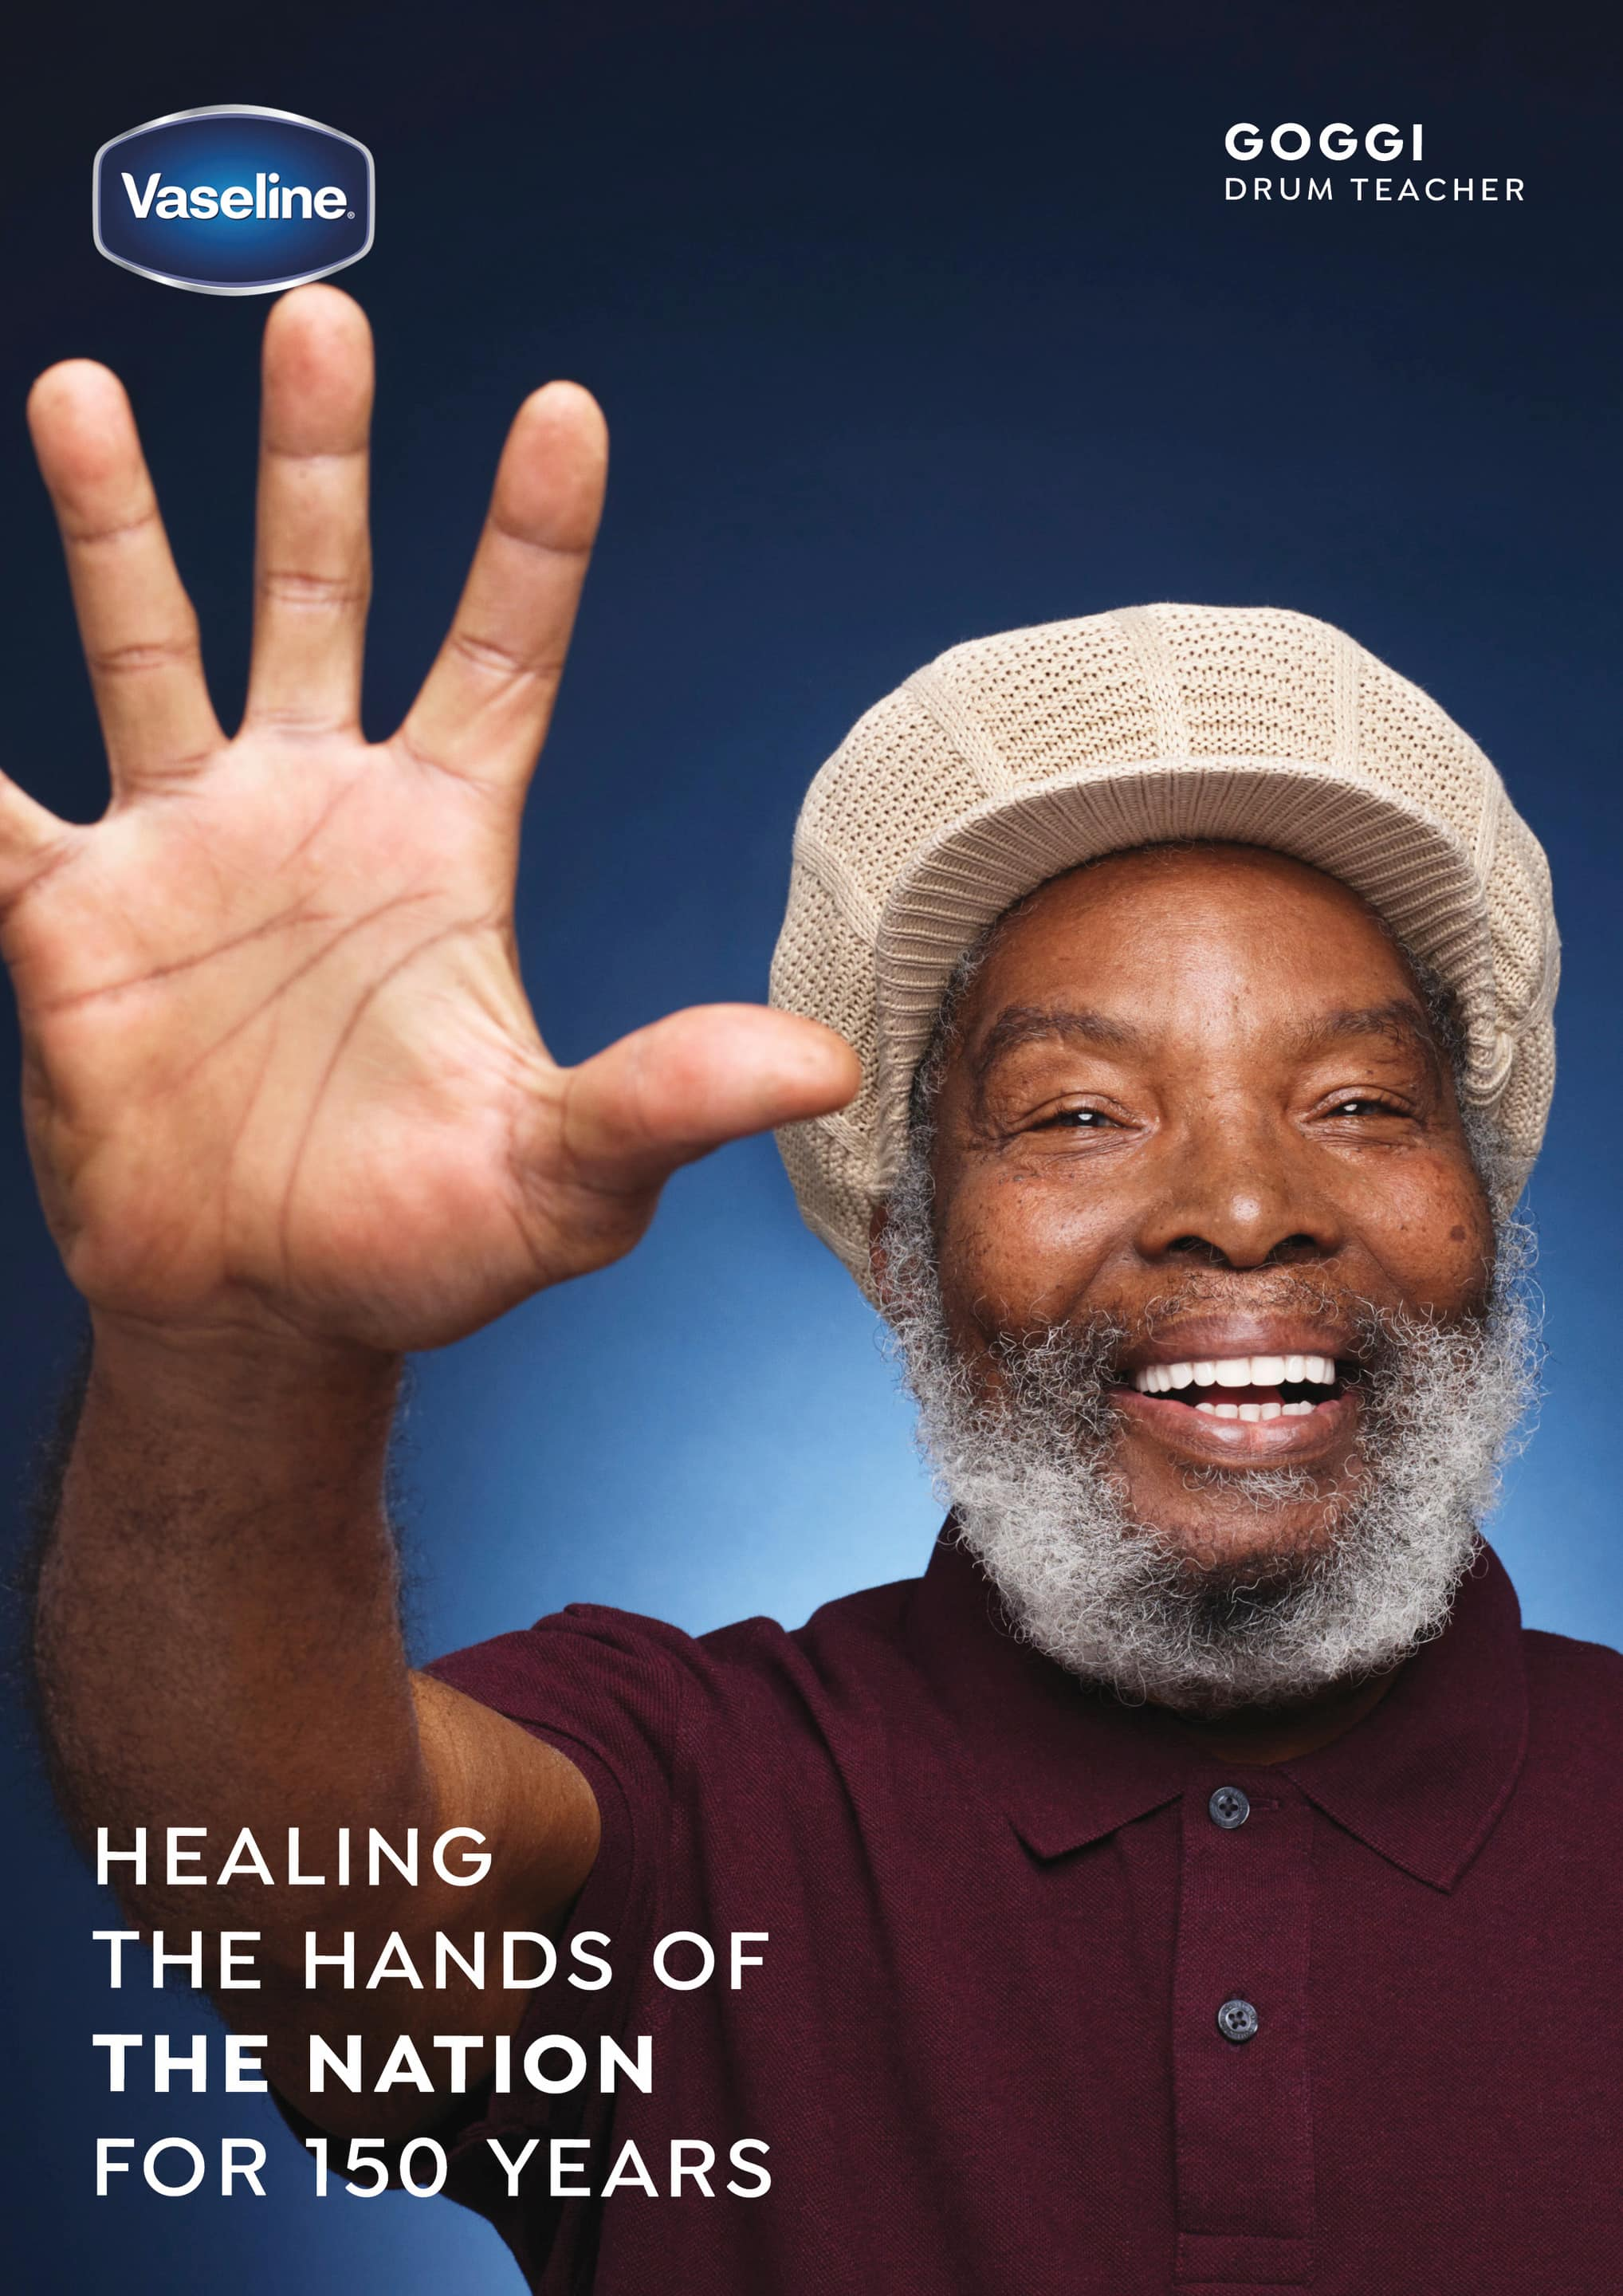 Healing the hands of the nation